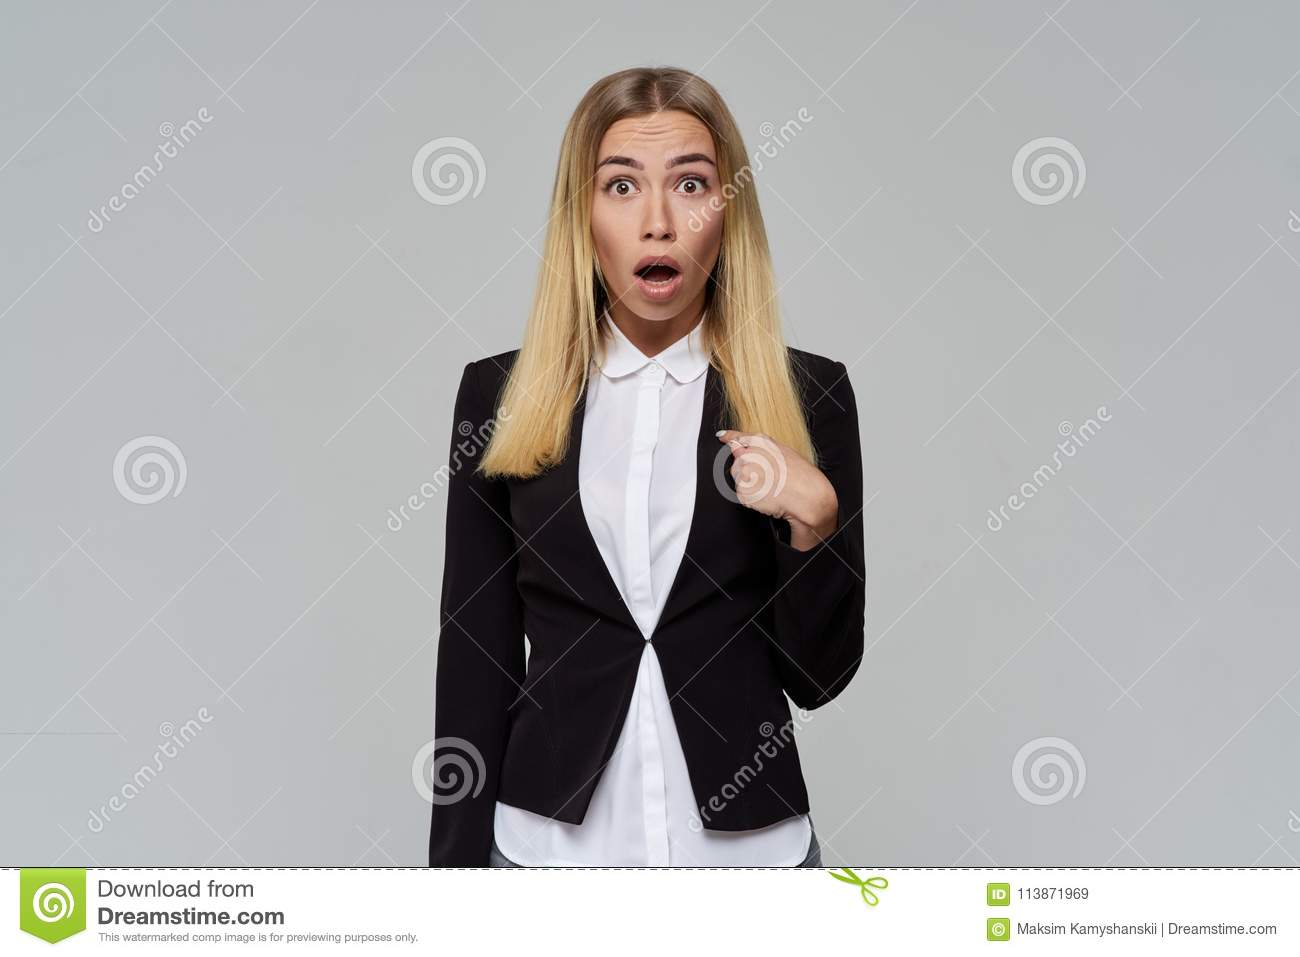 Business cute blonde woman with a shocked face opens her mouth and eyes wide in surprise and points at herself with her finger.